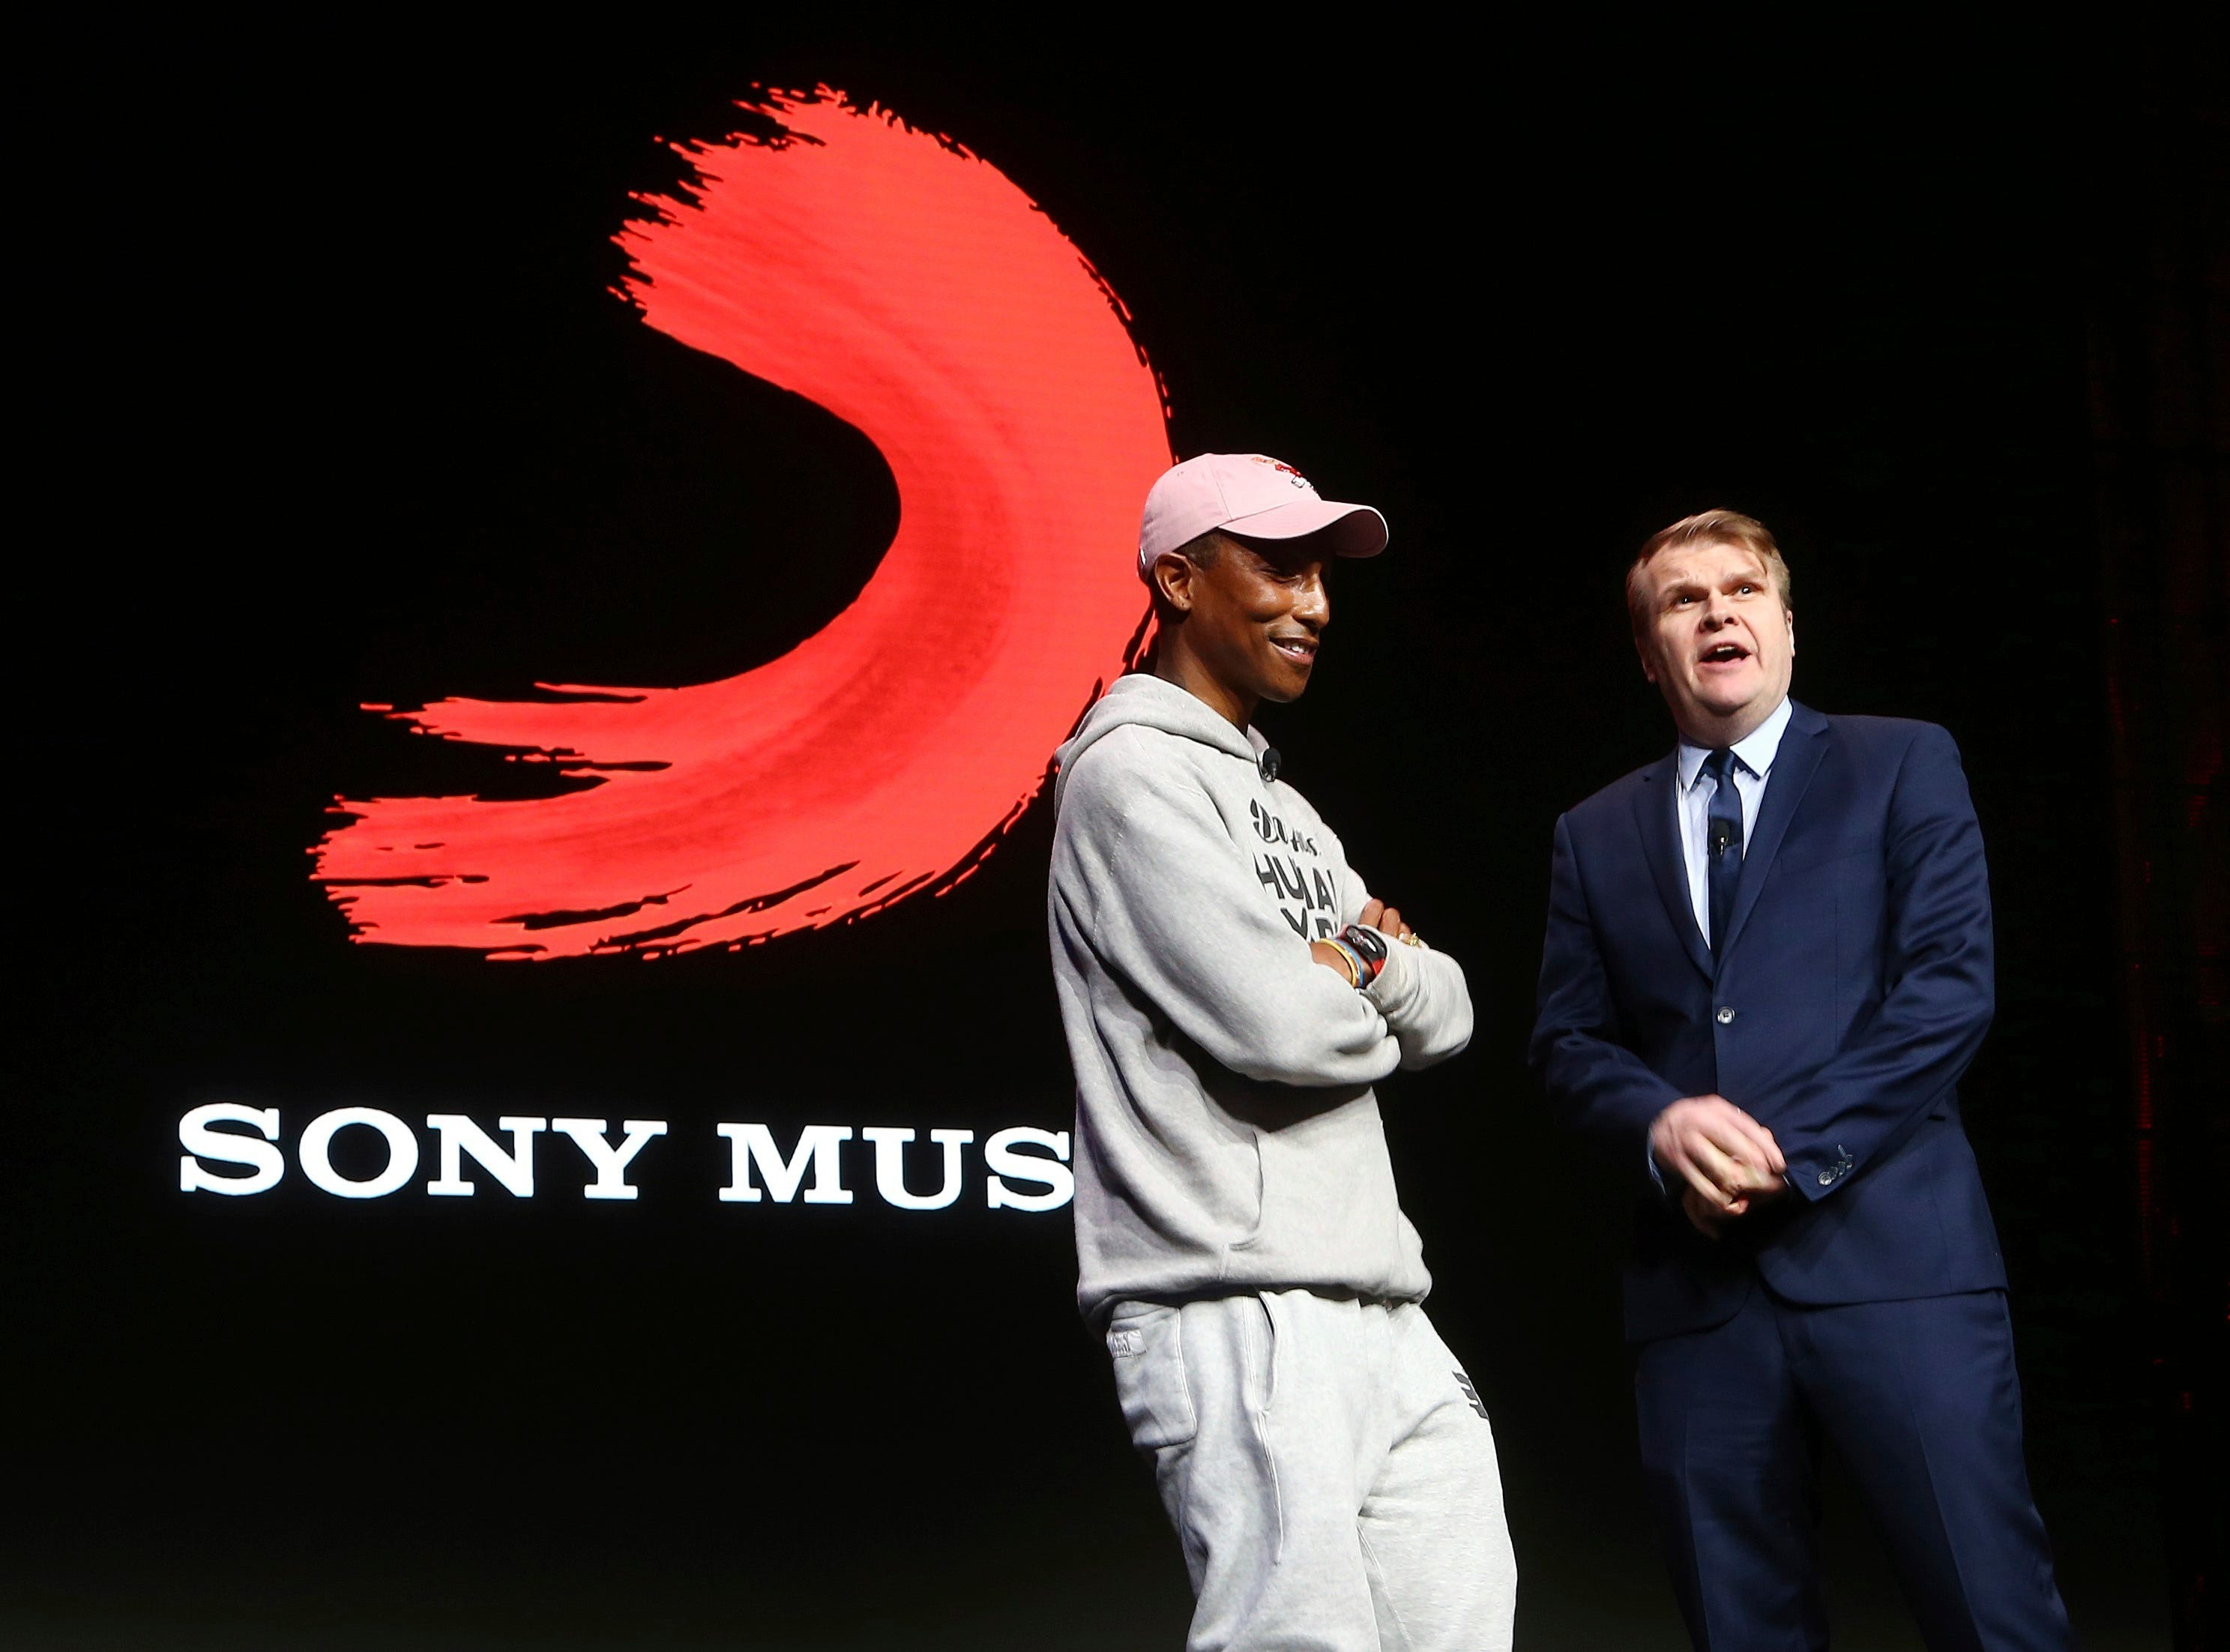 Rob Stringer, right, CEO of Sony Music Entertainment, surprises the audience as musician Pharrell Williams, left, walks on stage at the Sony news conference at CES International on Monday, Jan. 7, 2019, in Las Vegas.